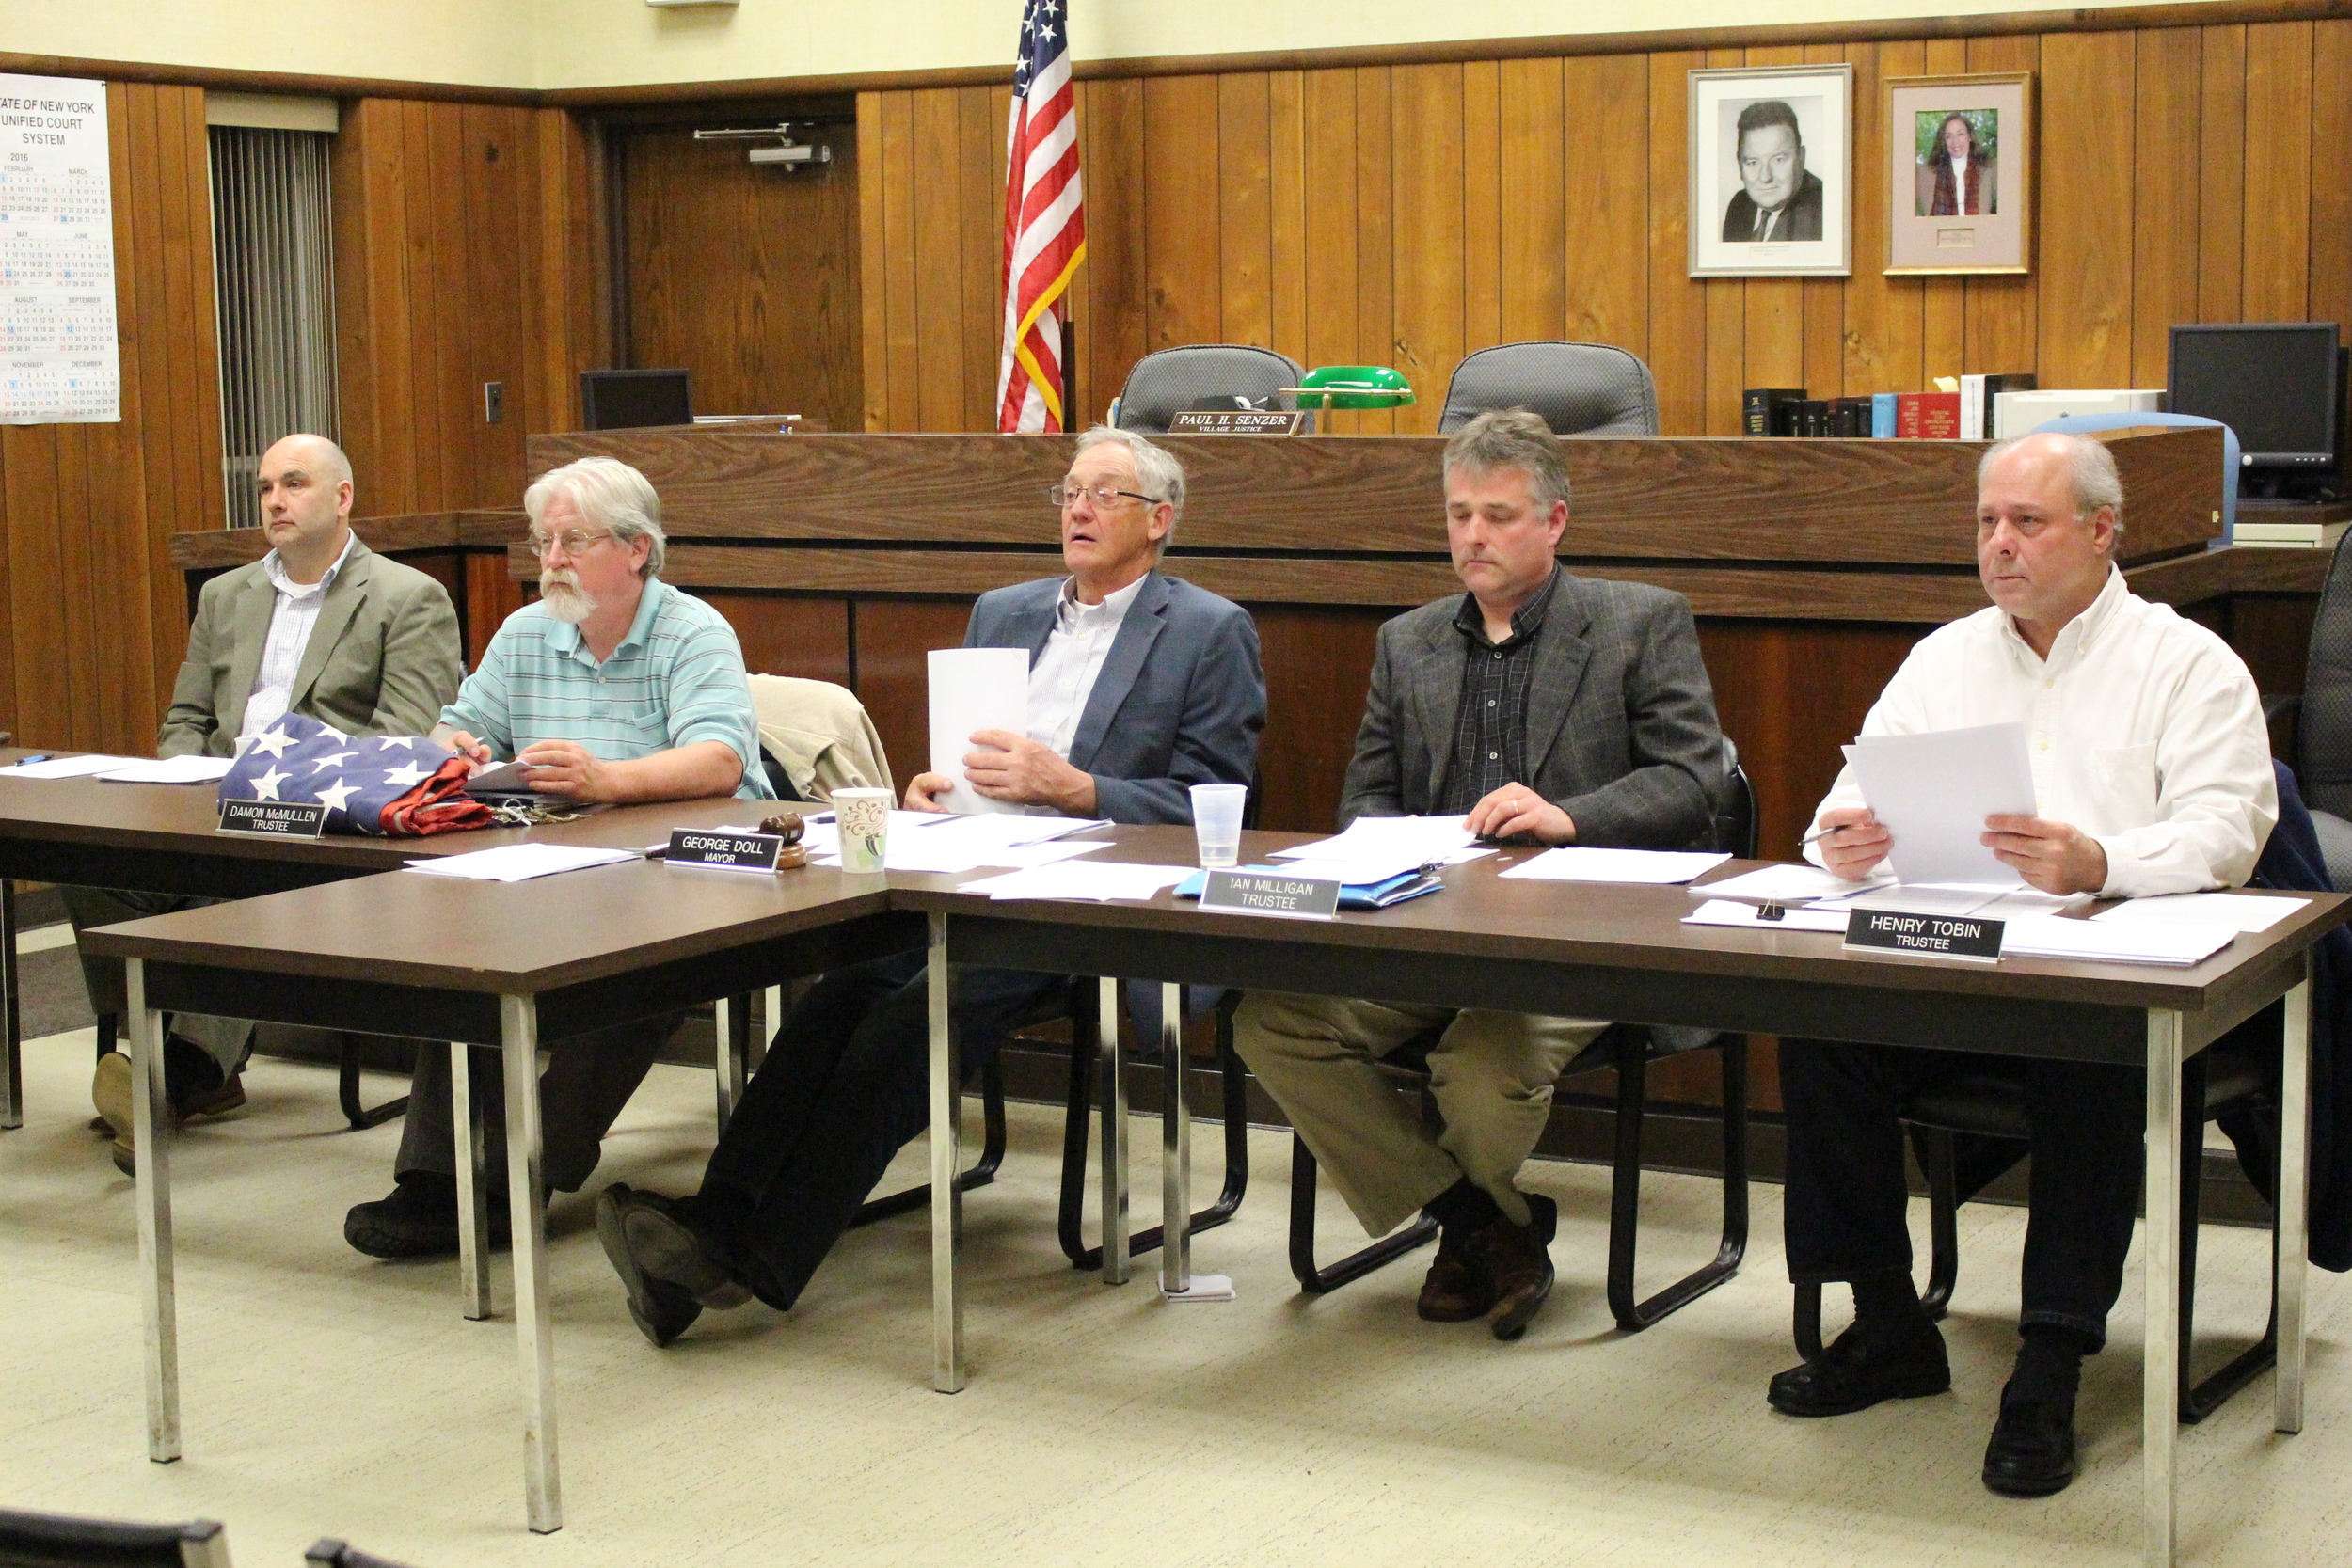 Northport Village trustees planned to bond $4 million for sanitary sewer system improvements, including consolidation of the Woodbine Avenue sewer force main with a new shoreline sewer pipe.